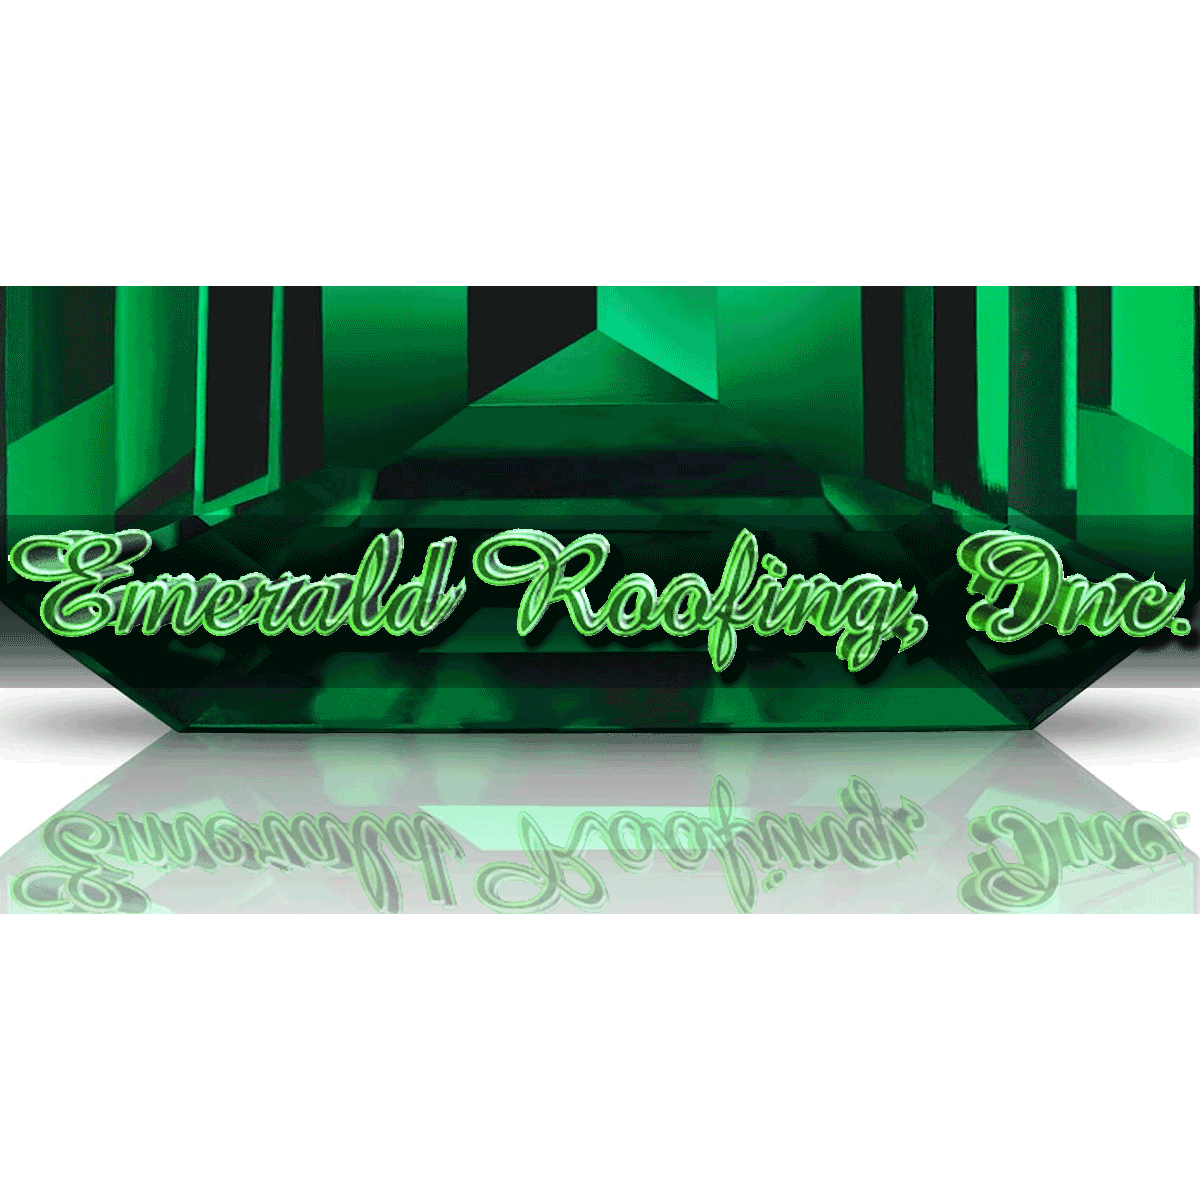 Emerald Roofing Inc - Port Angeles, WA - Roofing Contractors